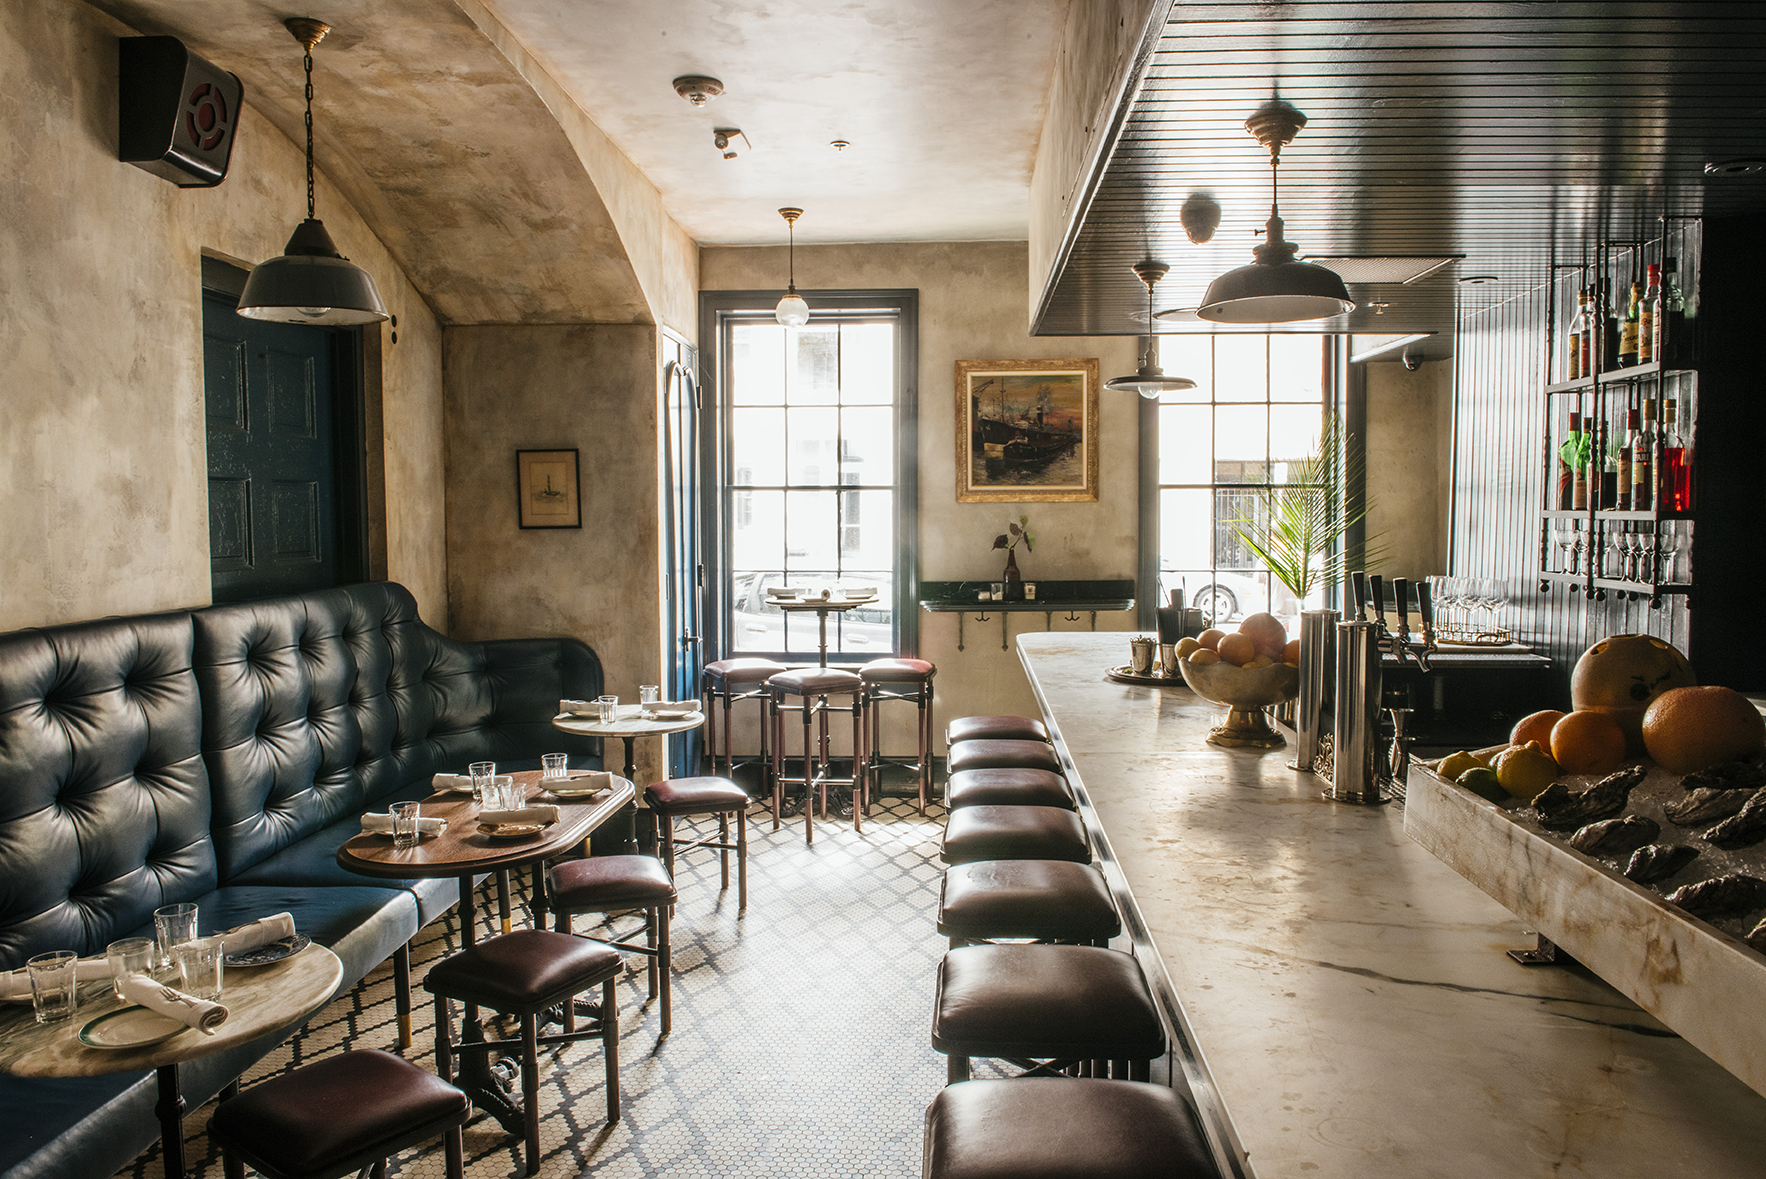 Seaworthy - Located in an old CBD townhouse next to the Ace Hotel, Seaworthy is a warm, layered space that evokes a different time and place. Dripping candlewax and cozy seating make it hard to fight the romantic vibe.